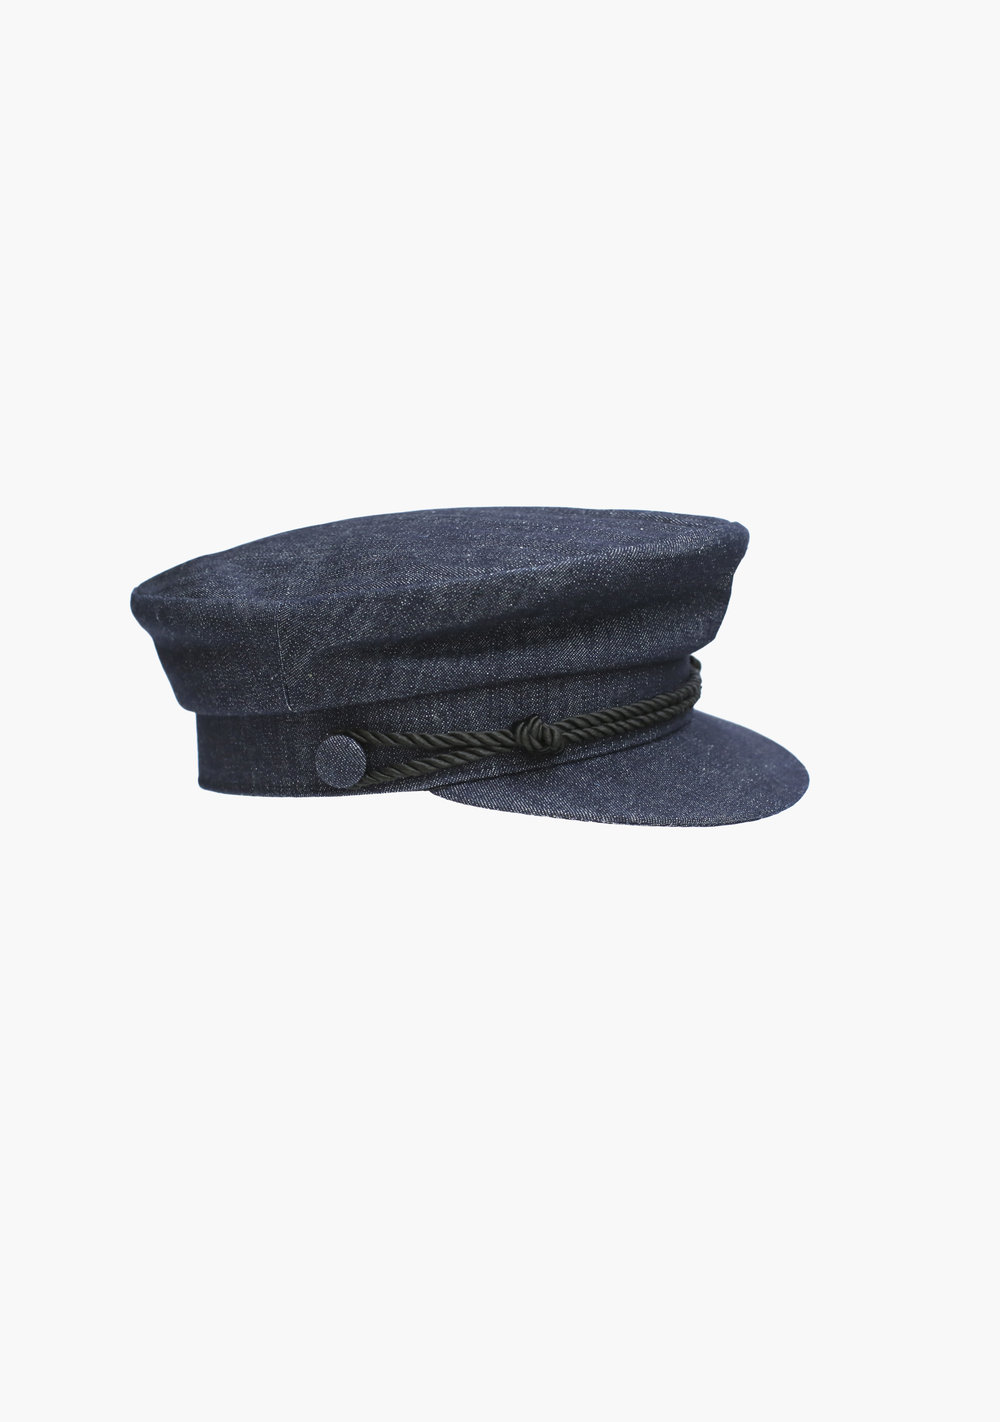 66thelabel_navy_denim_cap.jpg